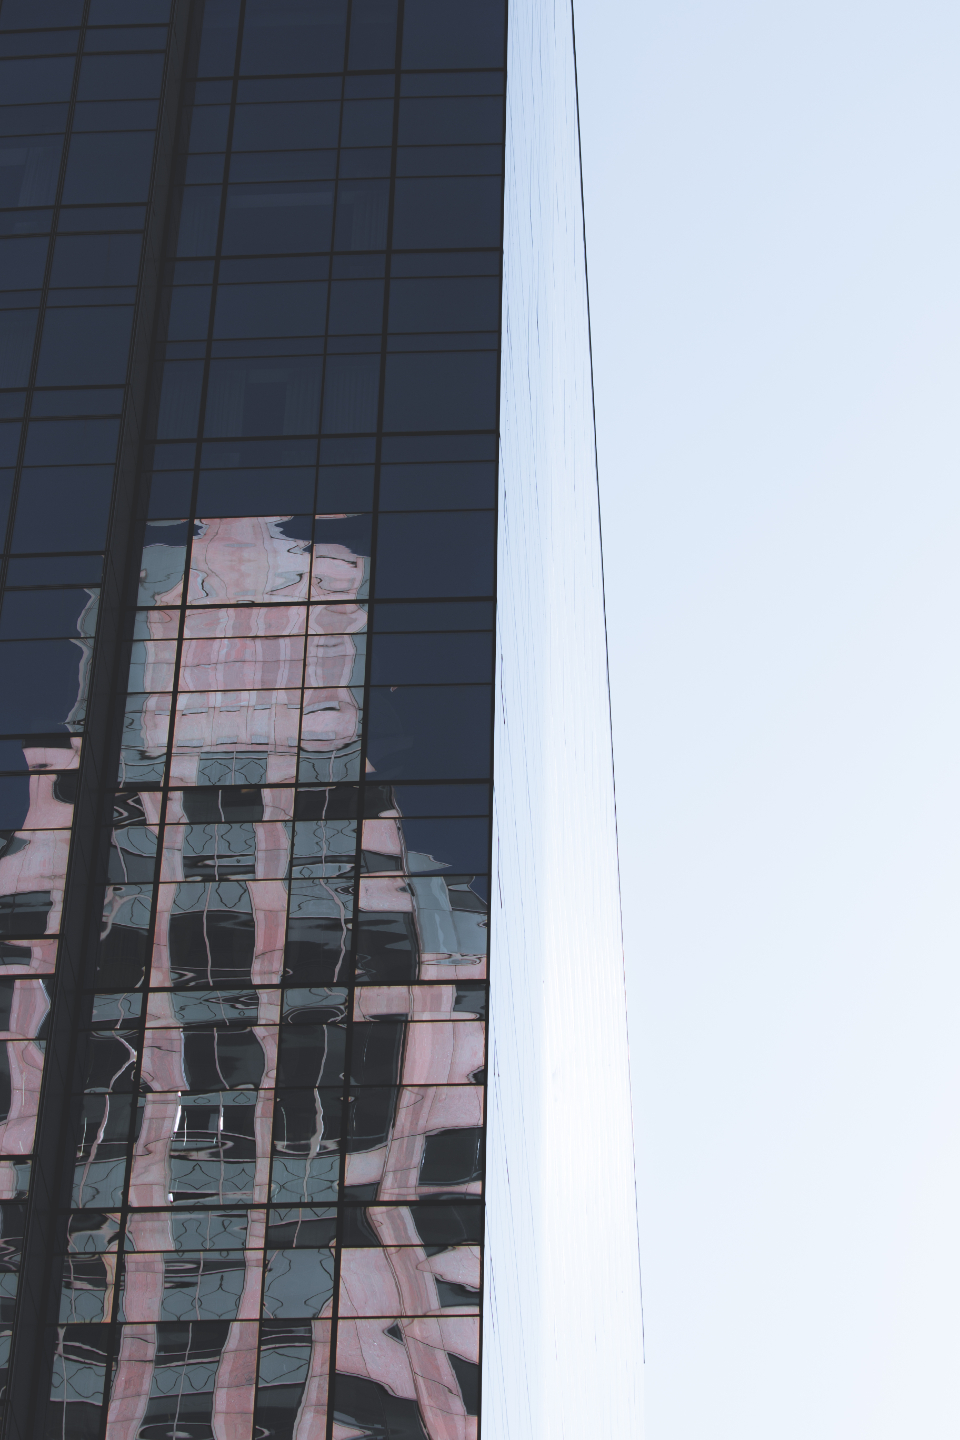 building architecture city modern windows design urban exterior wall office abstract reflection glass business